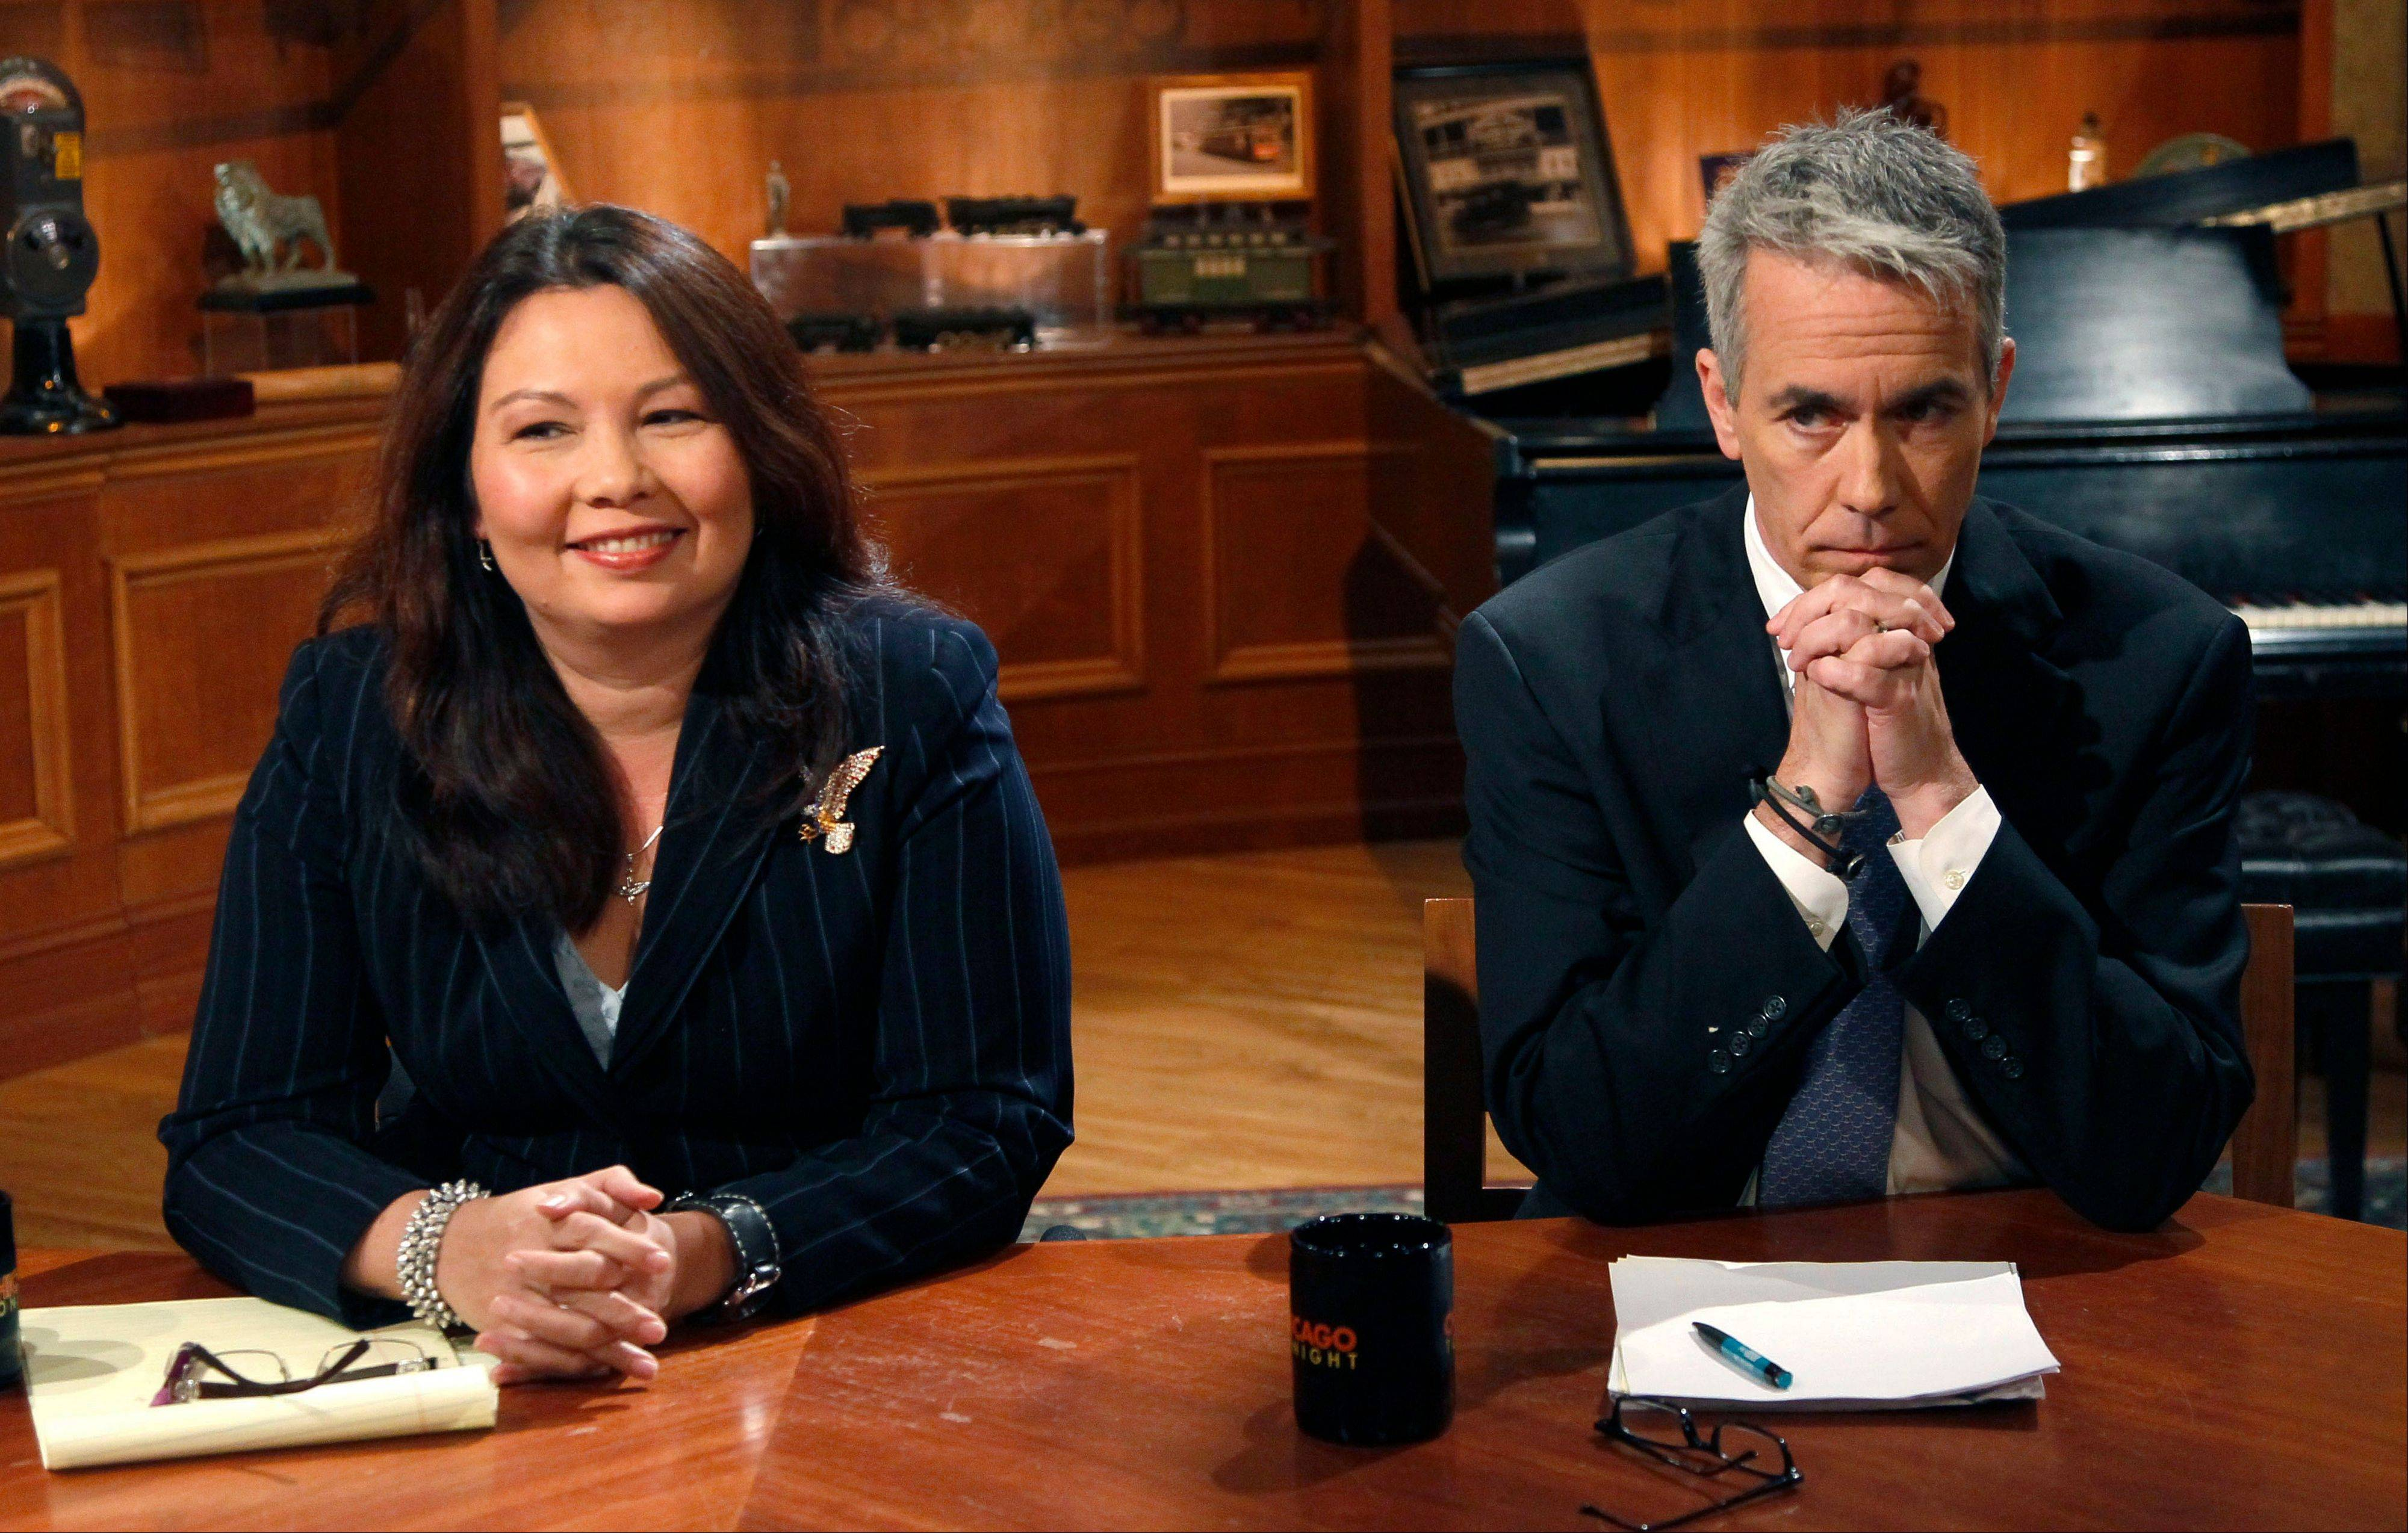 Republican U.S. Rep. Joe Walsh, right, and challenger Democrat Tammy Duckworth before a televised debate at the WTTW studios Thursday, Oct. 18, 2012, in Chicago.